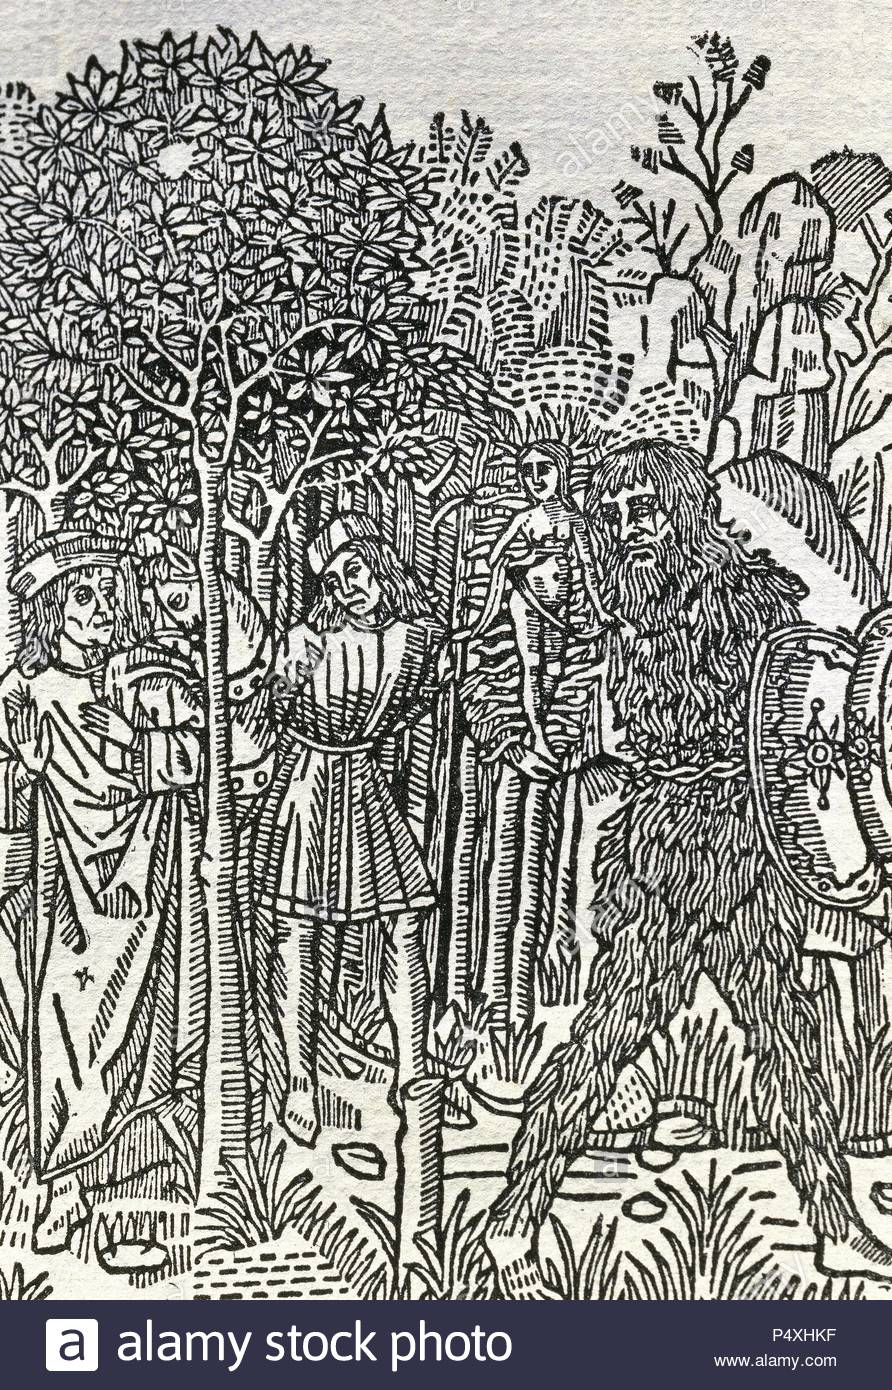 Diego de San Pedro (ca. 1437-ca. 1498). Spanish writer. The Prison of Love,  1492. Engraving. Edition in Barcelona in 1493. Catalan translation. Spain.